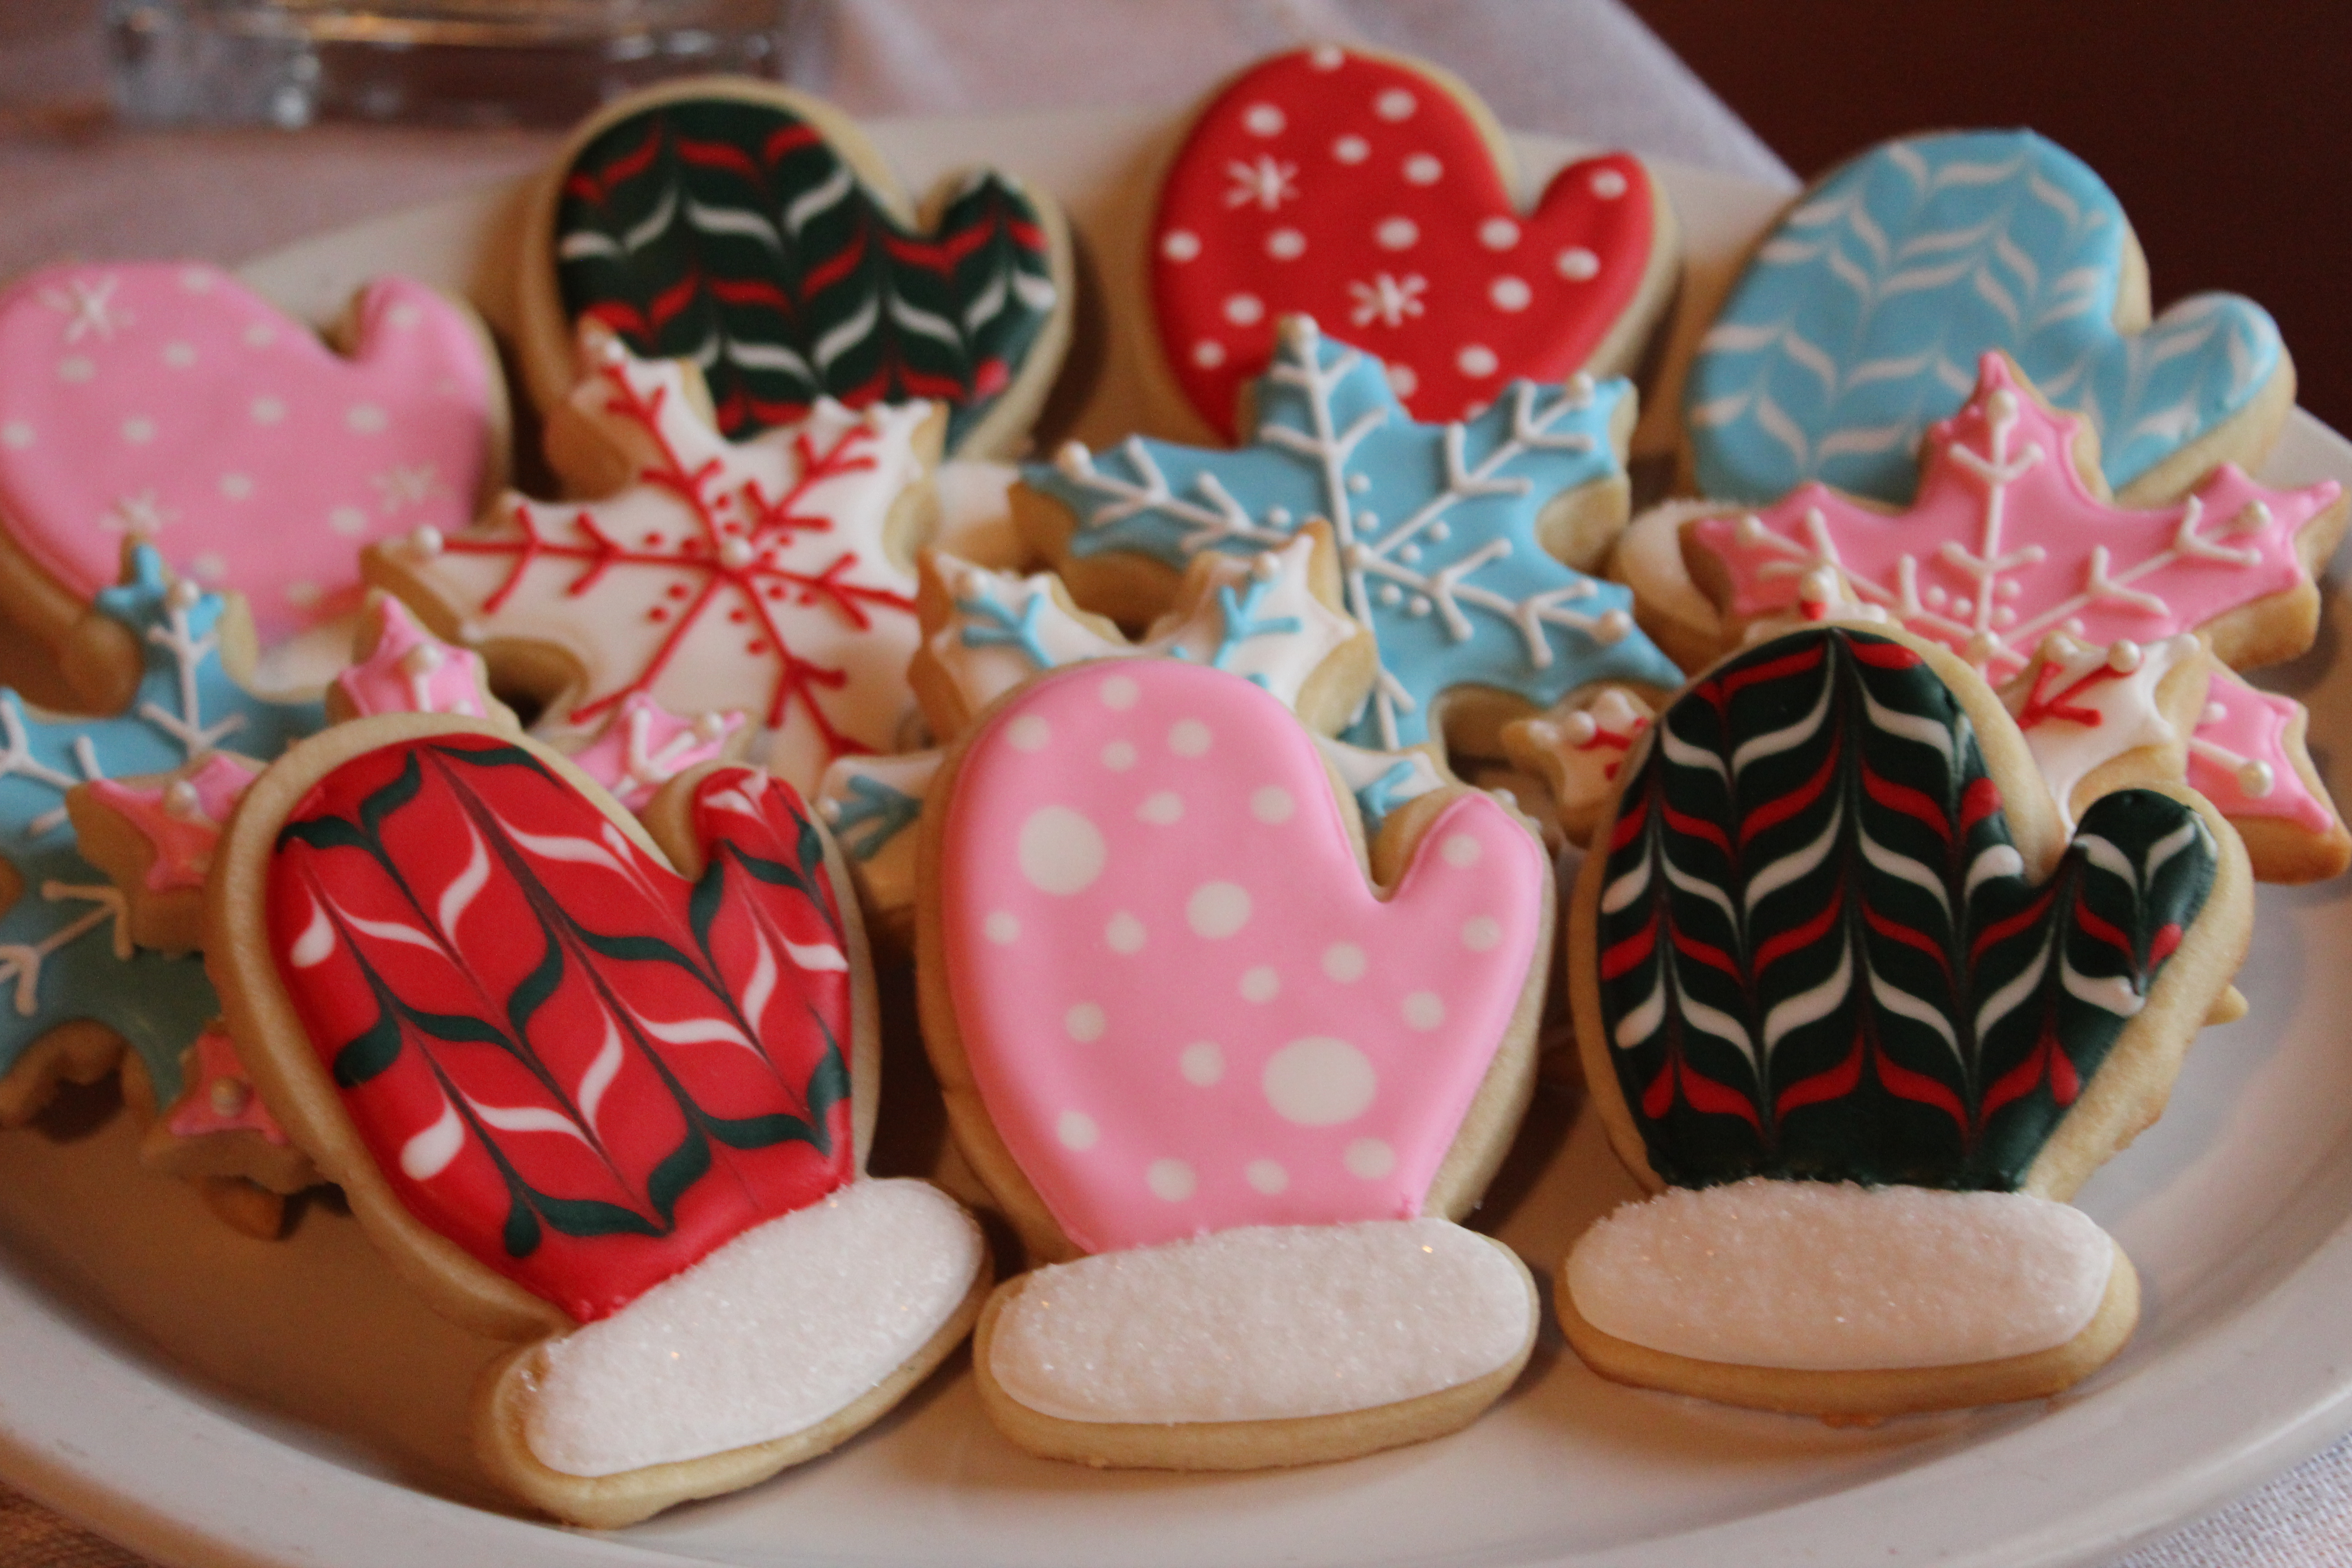 10 Tips For Successful Sugar Cookie Decorating